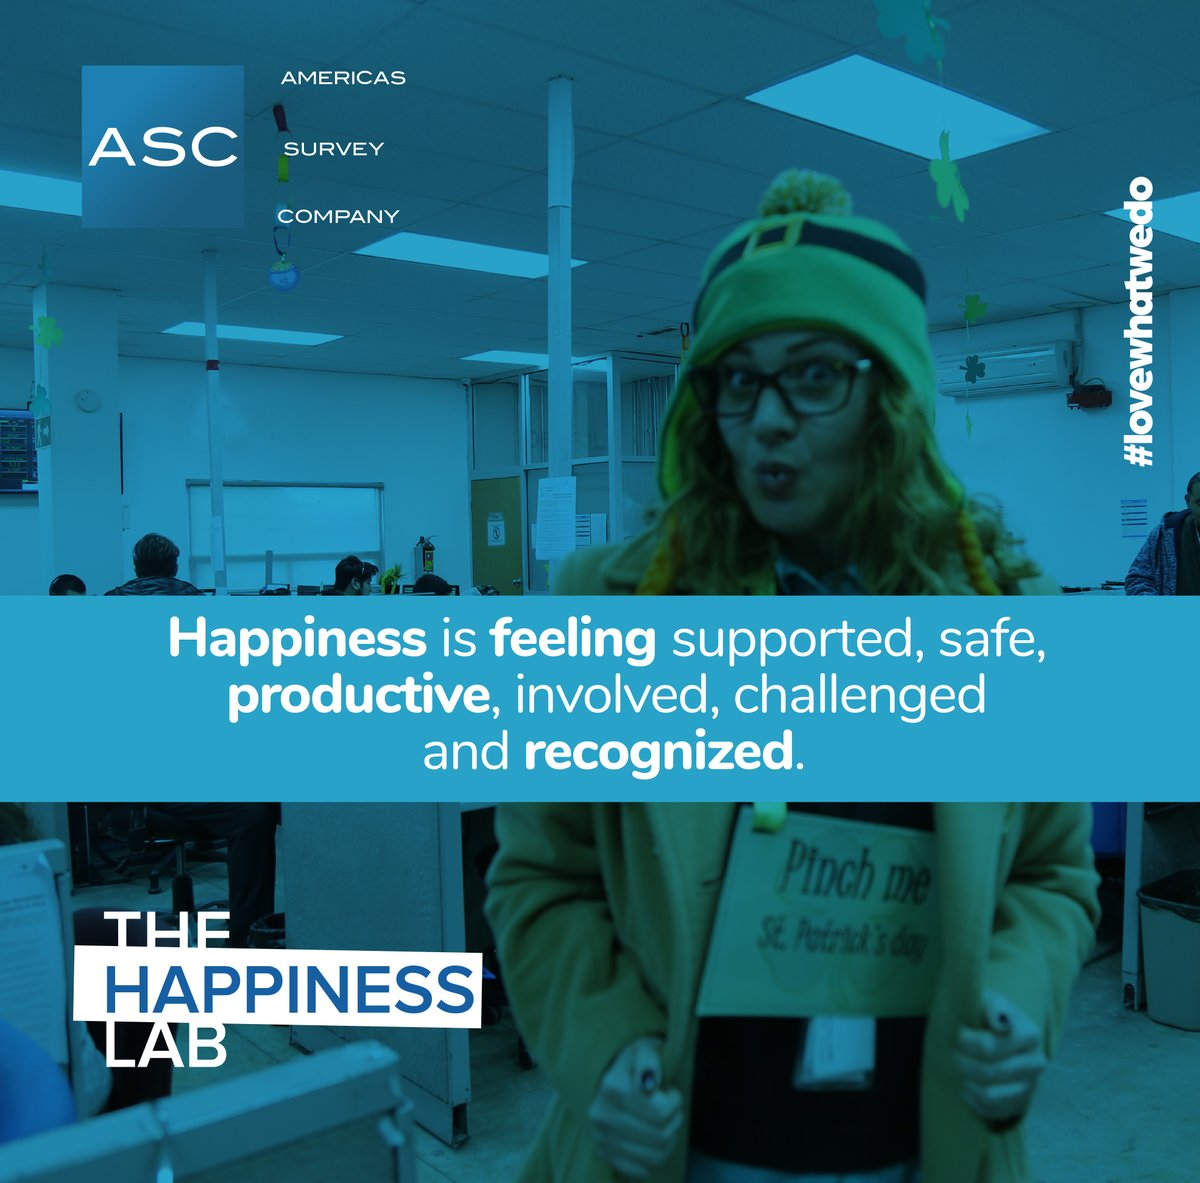 When employees are happy, organizations shine and prosper. The #HappinessLab #AmericasSurveyCompany  #callcenters #callcenterservices #surveyresearch #phoneanswering #datacollection #marketresearch #marketingresearch #lovewhatwedo pic.twitter.com/BPG45B6OG1